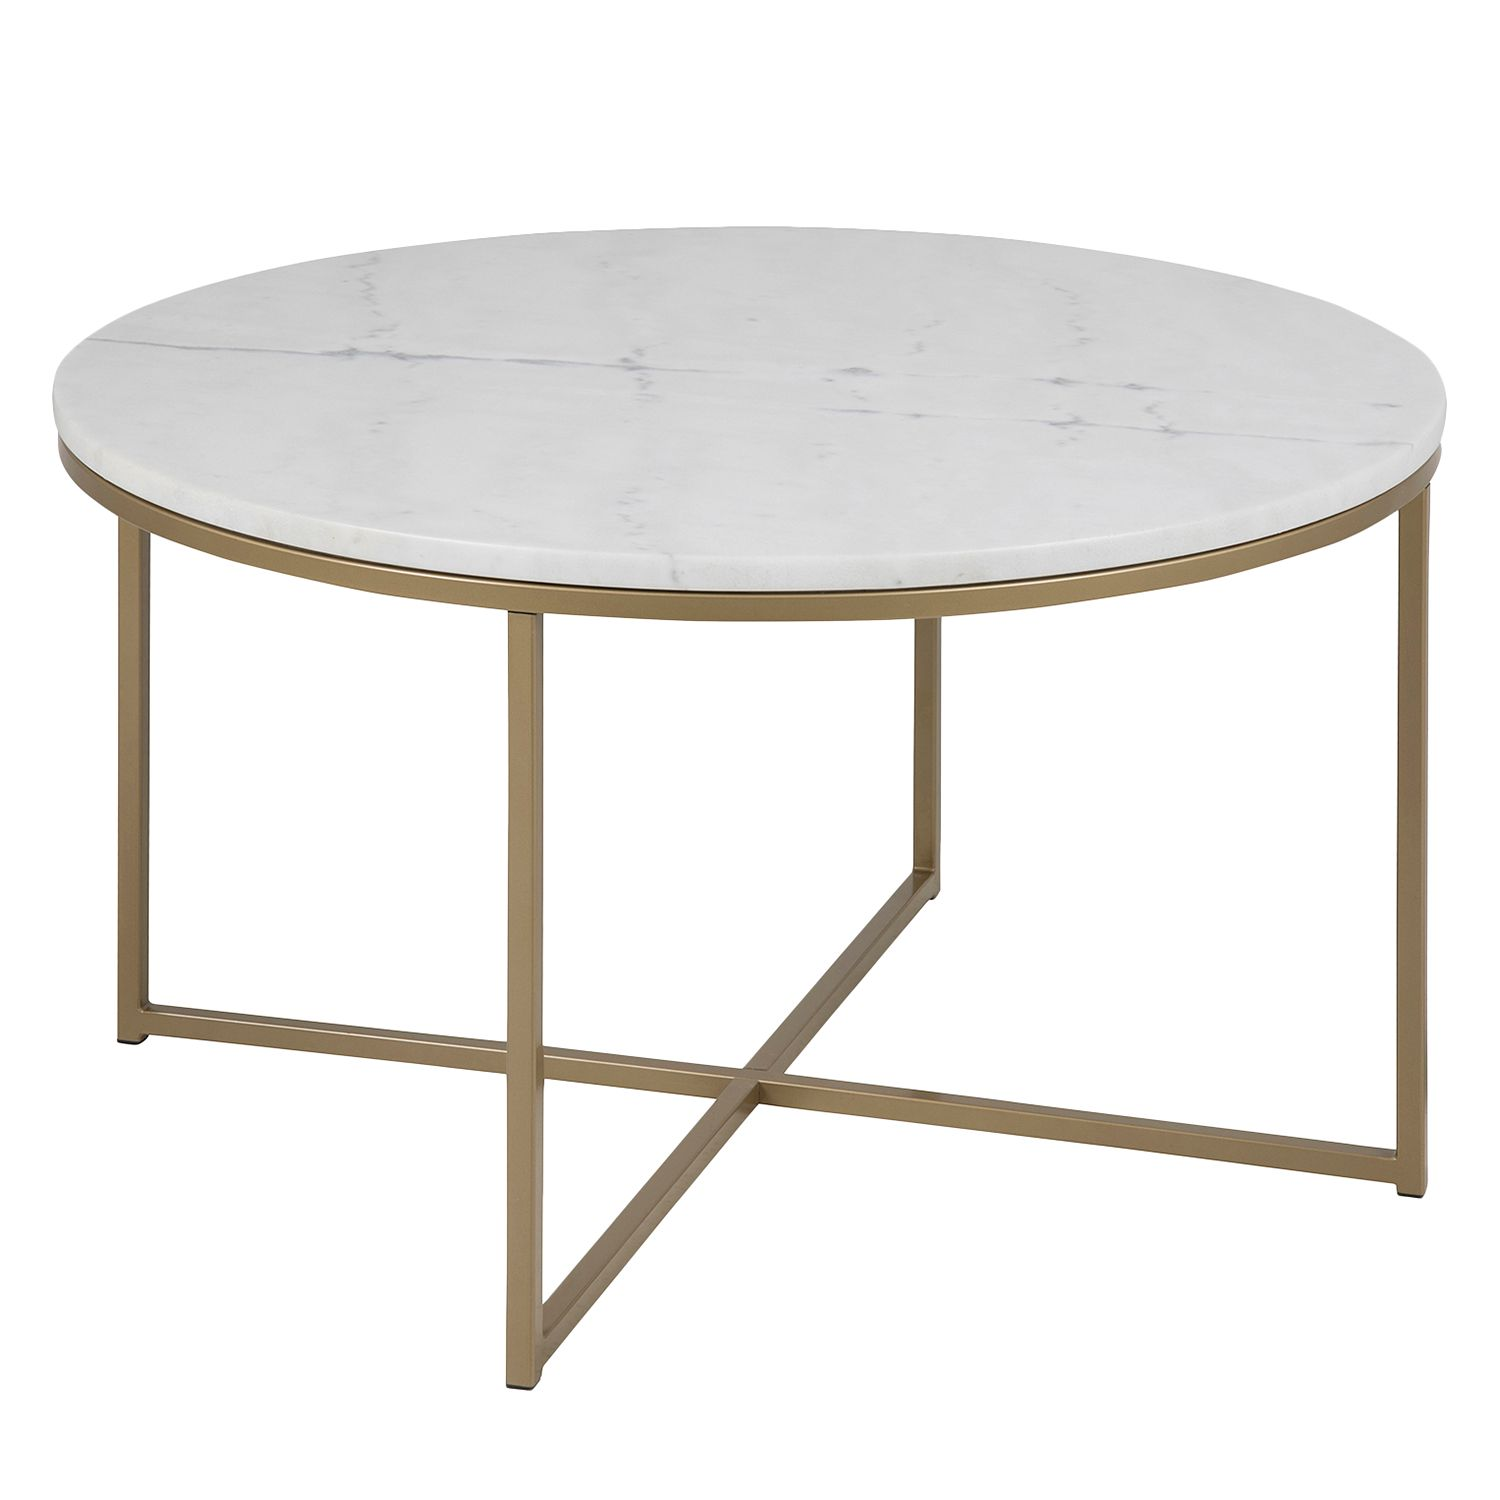 Couchtisch Polycarbonat Une Table Basse En Marbre And Laiton Mode And Deco